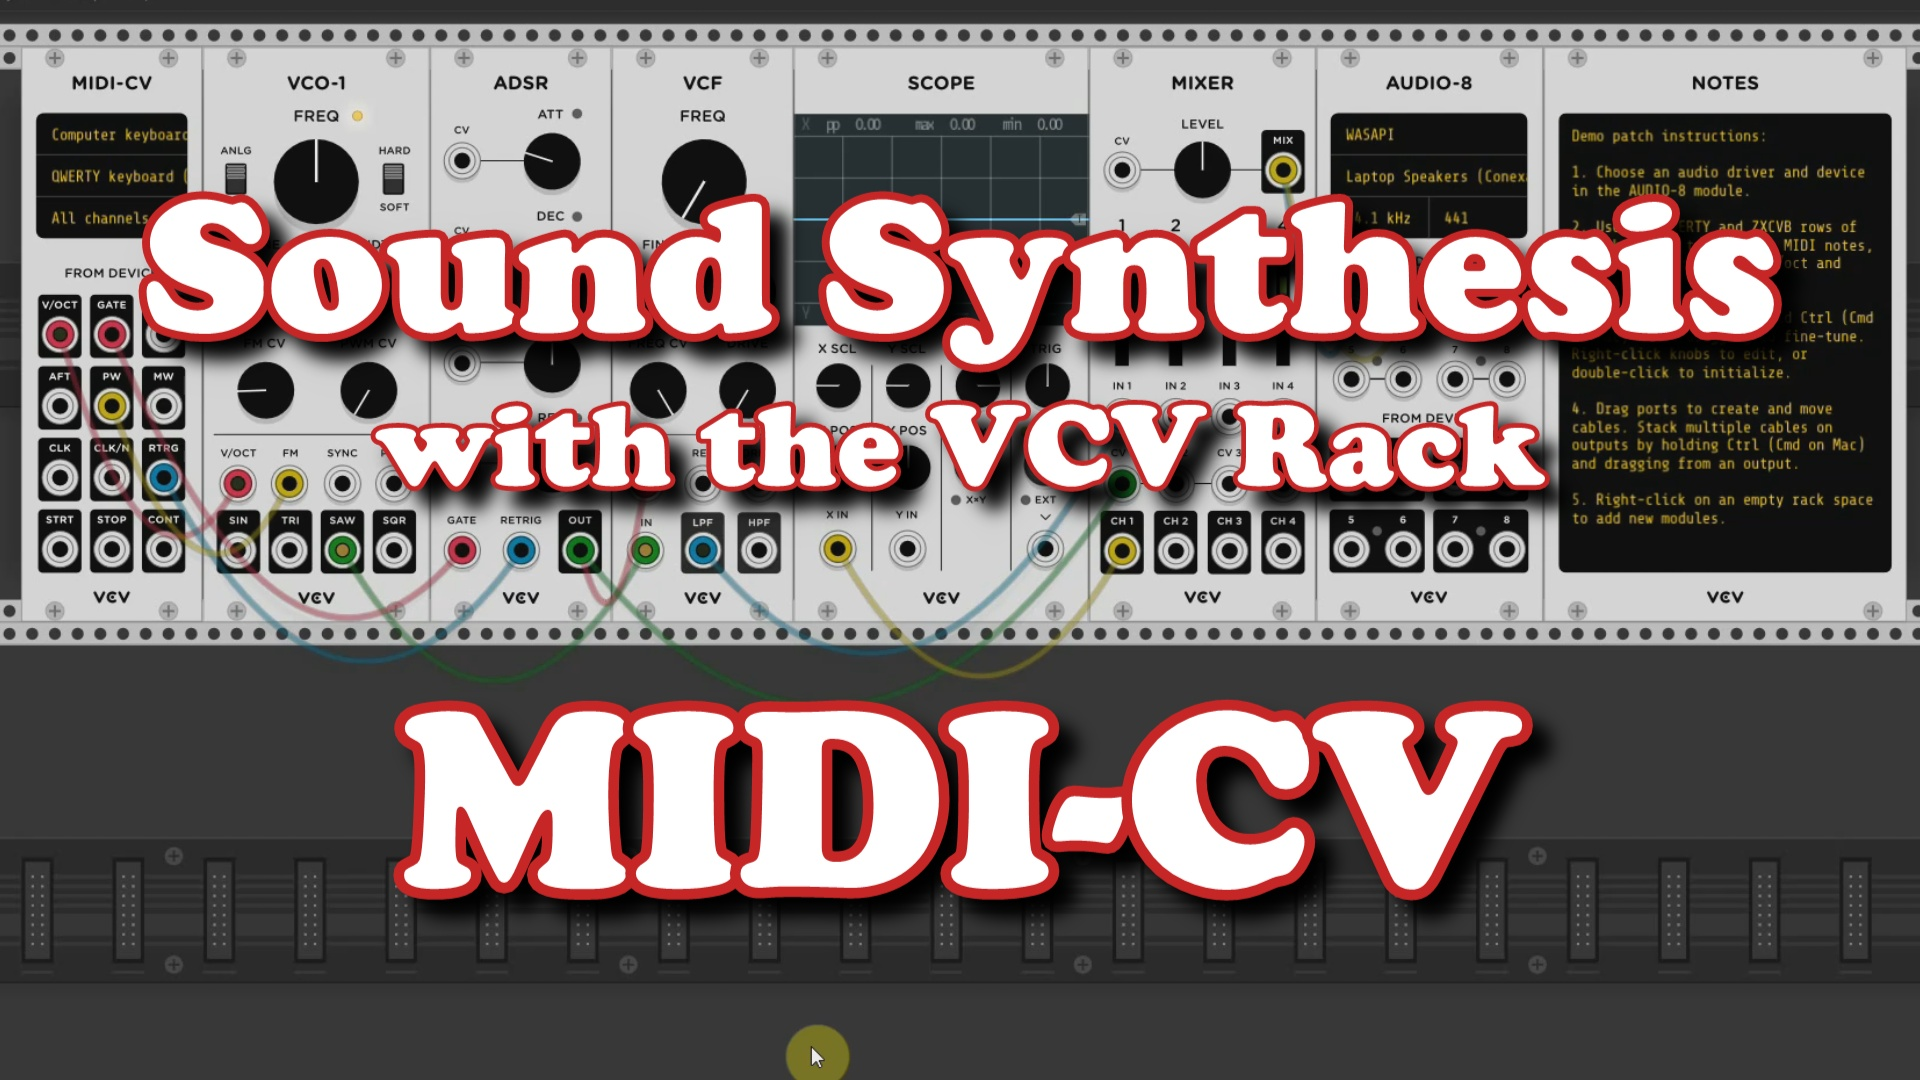 VCV 001 MIDI CV screenhsot